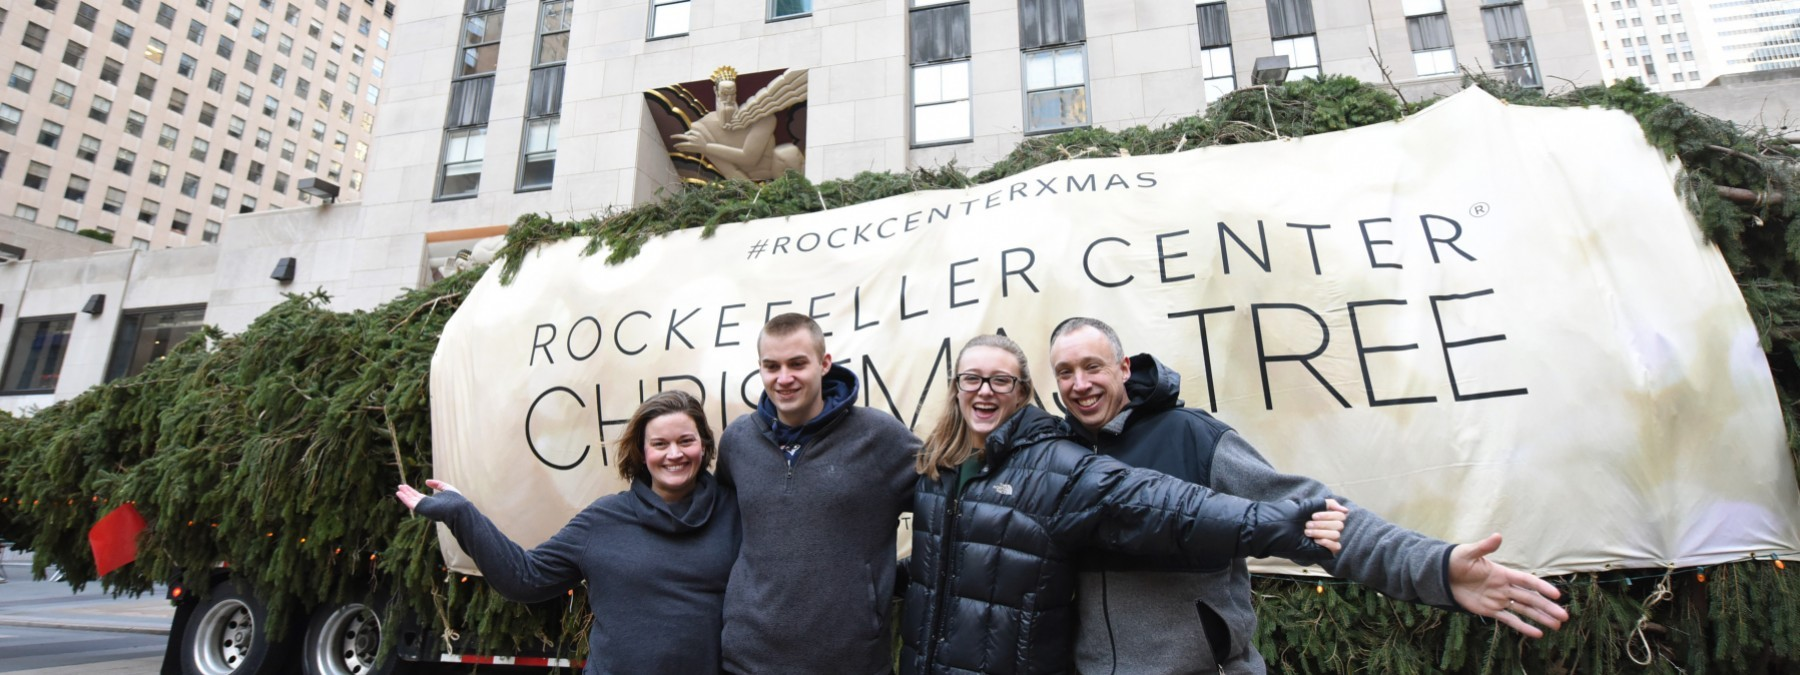 From Oneonta to Rockefeller Center